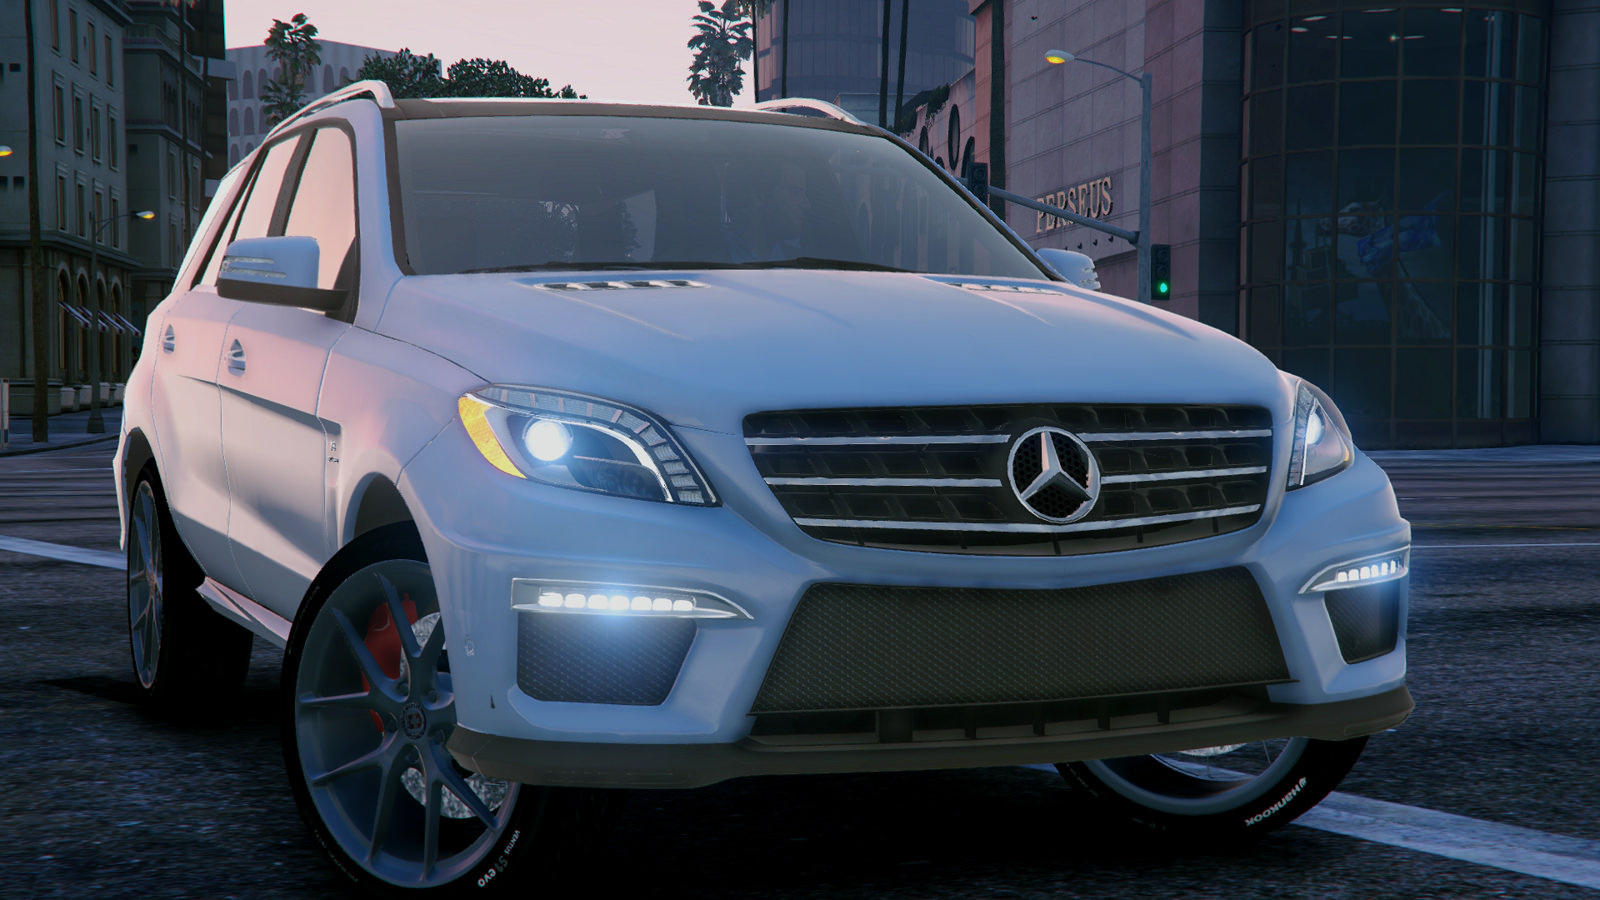 Mercedes benz ml63 amg 2014 gta5 for Mercedes benz gta